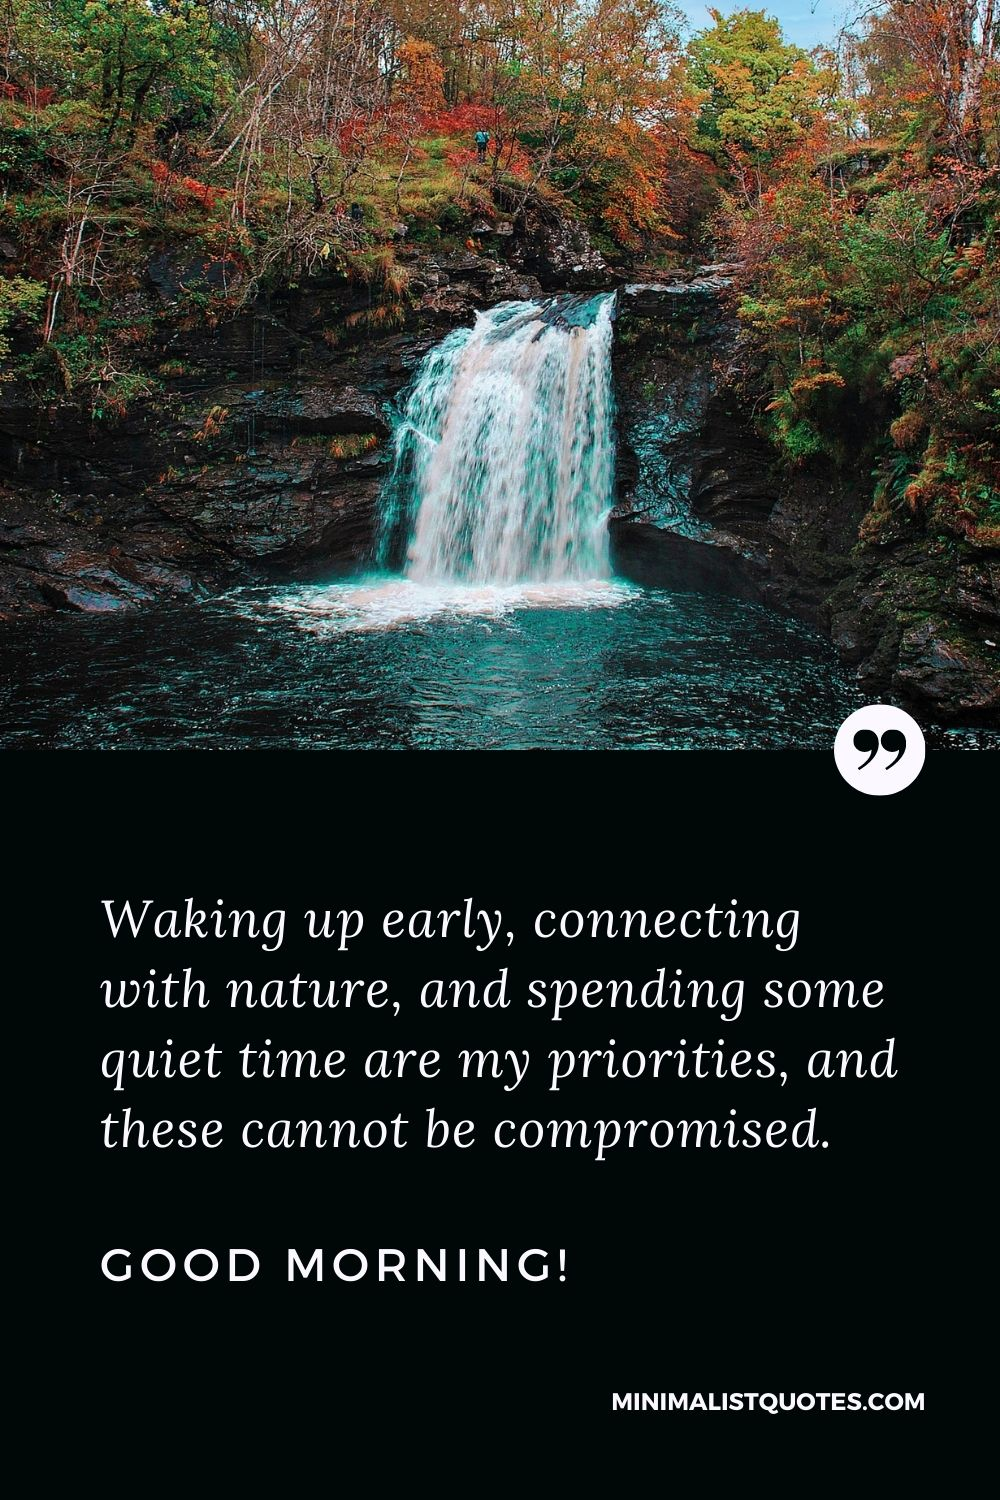 Good Morning Quote, Wish & Message: Waking up early, connecting with nature, and spending some quiet time are my priorities, and these cannot be compromised. Good Morning!